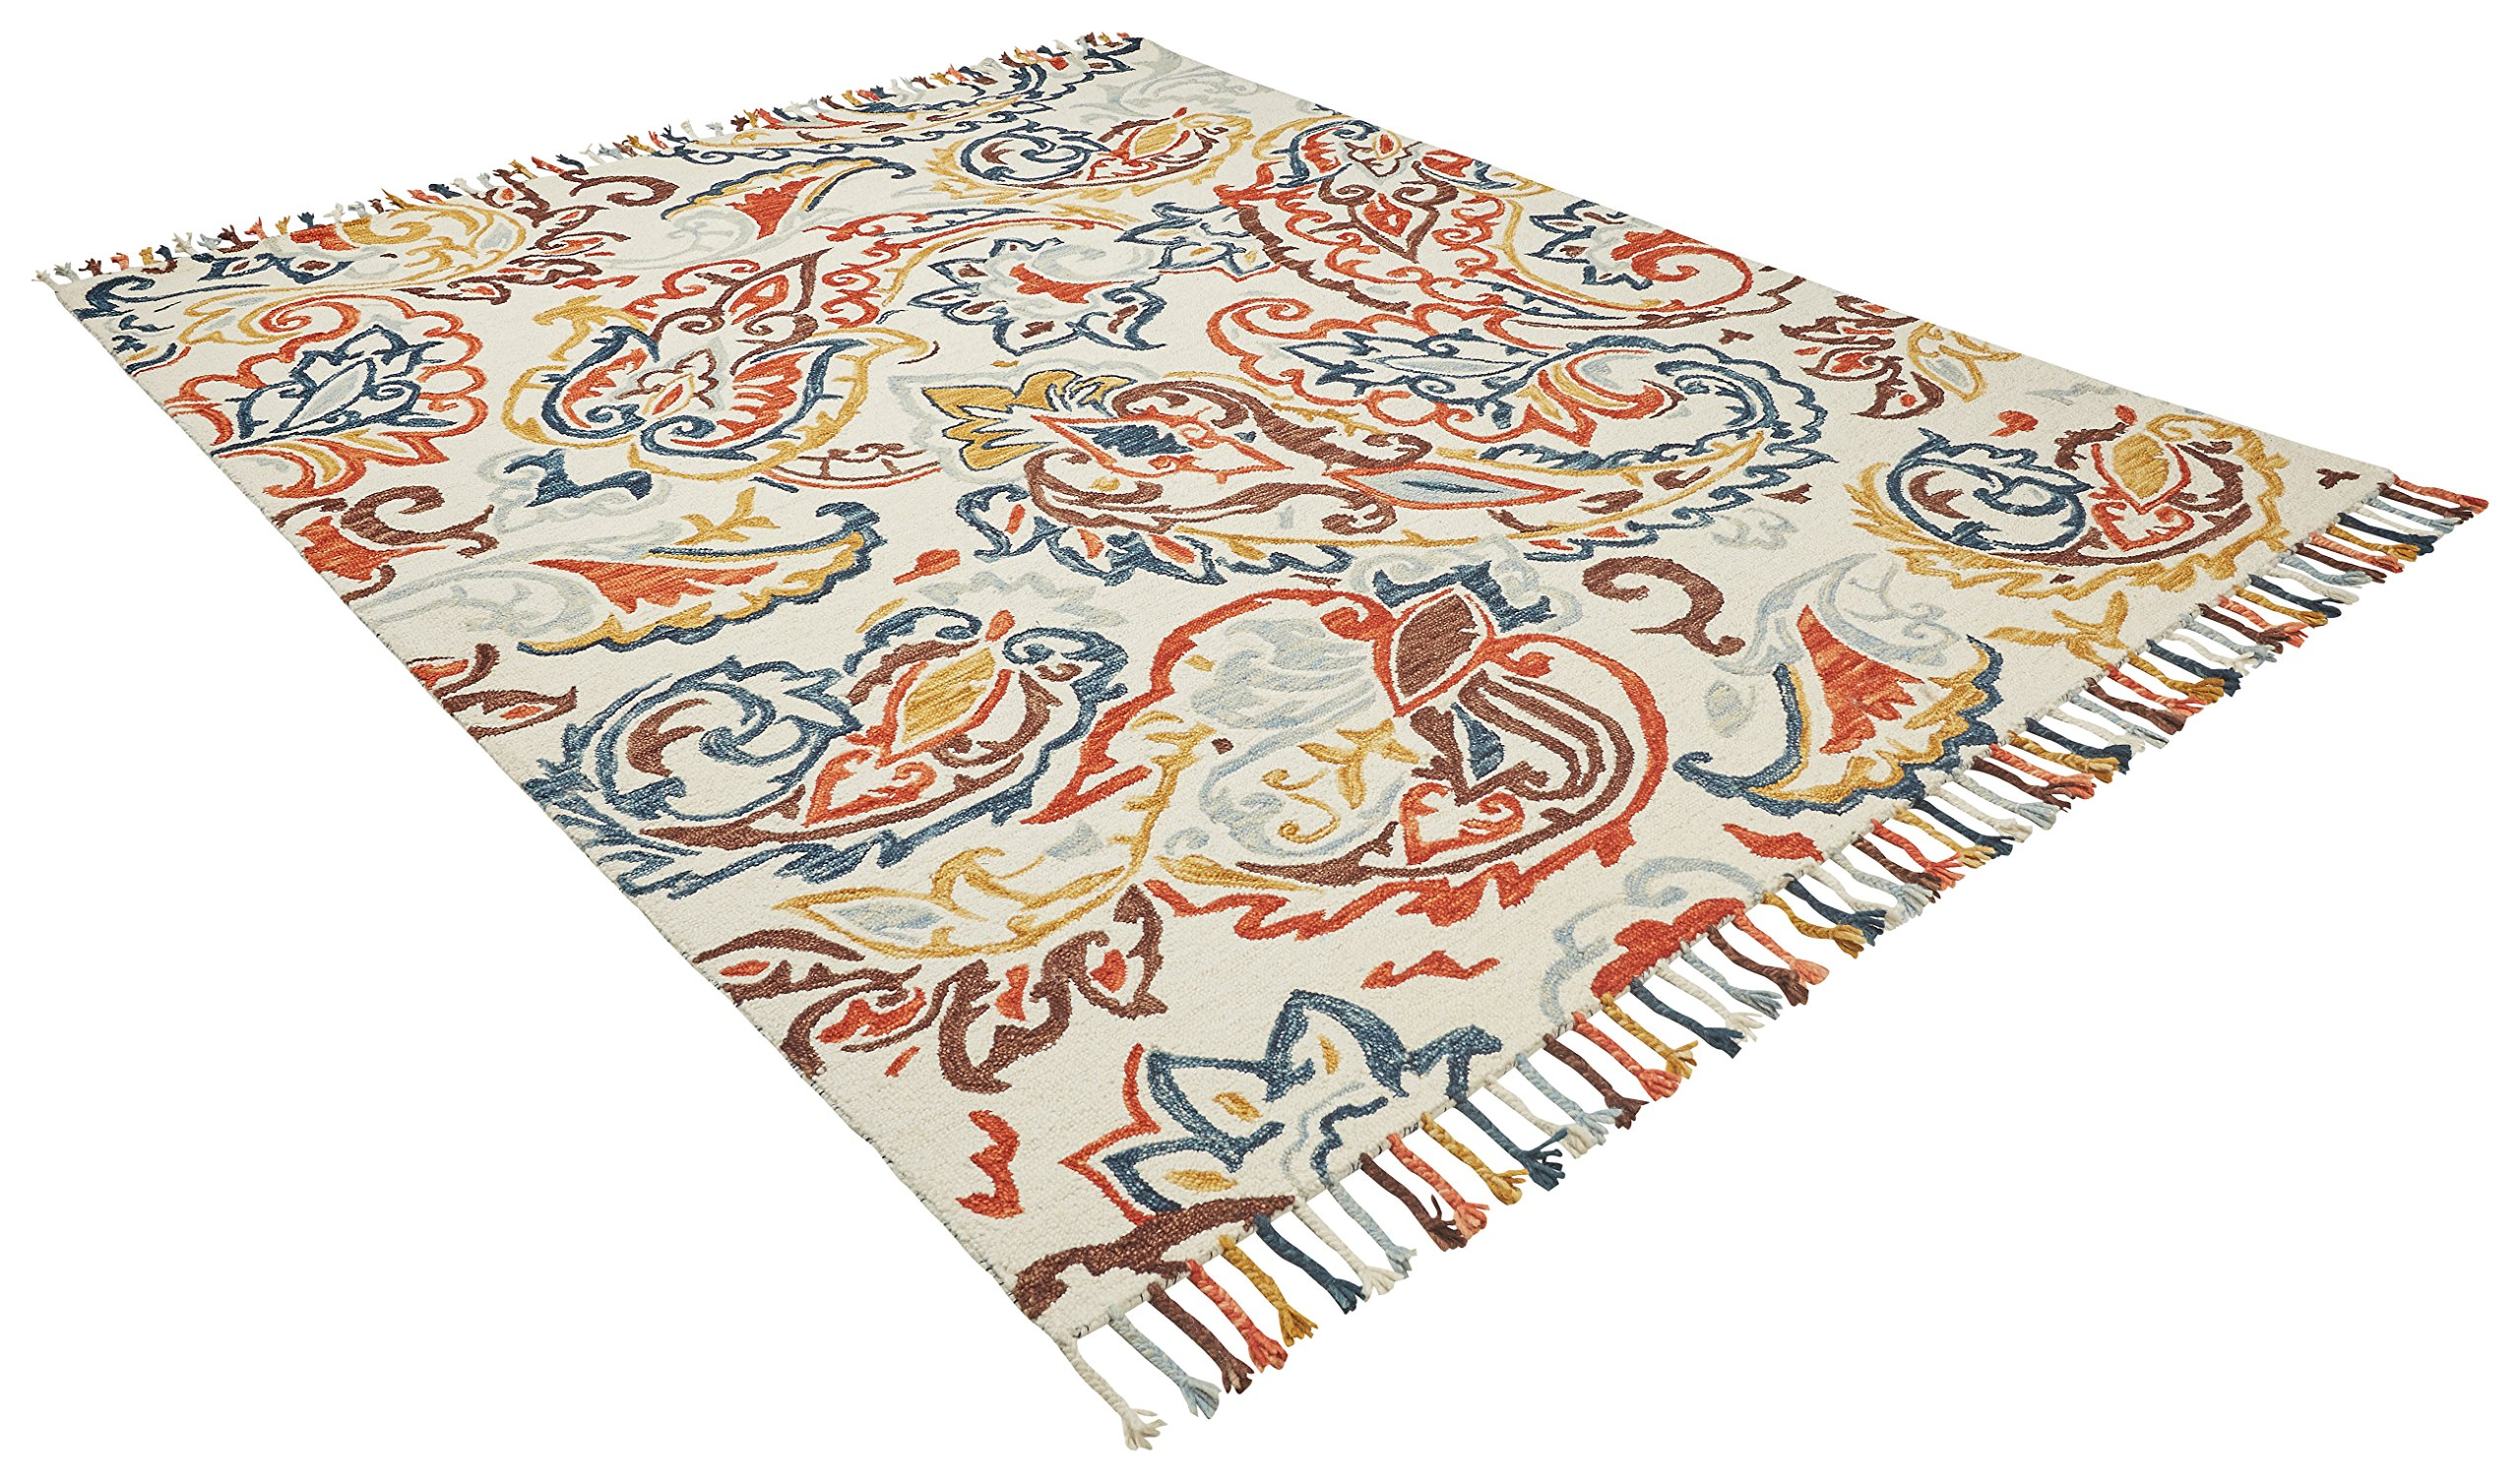 Stone & Beam Swirling Paisley Motif Wool Area Rug, 8' x 10', Multi by Stone & Beam (Image #4)